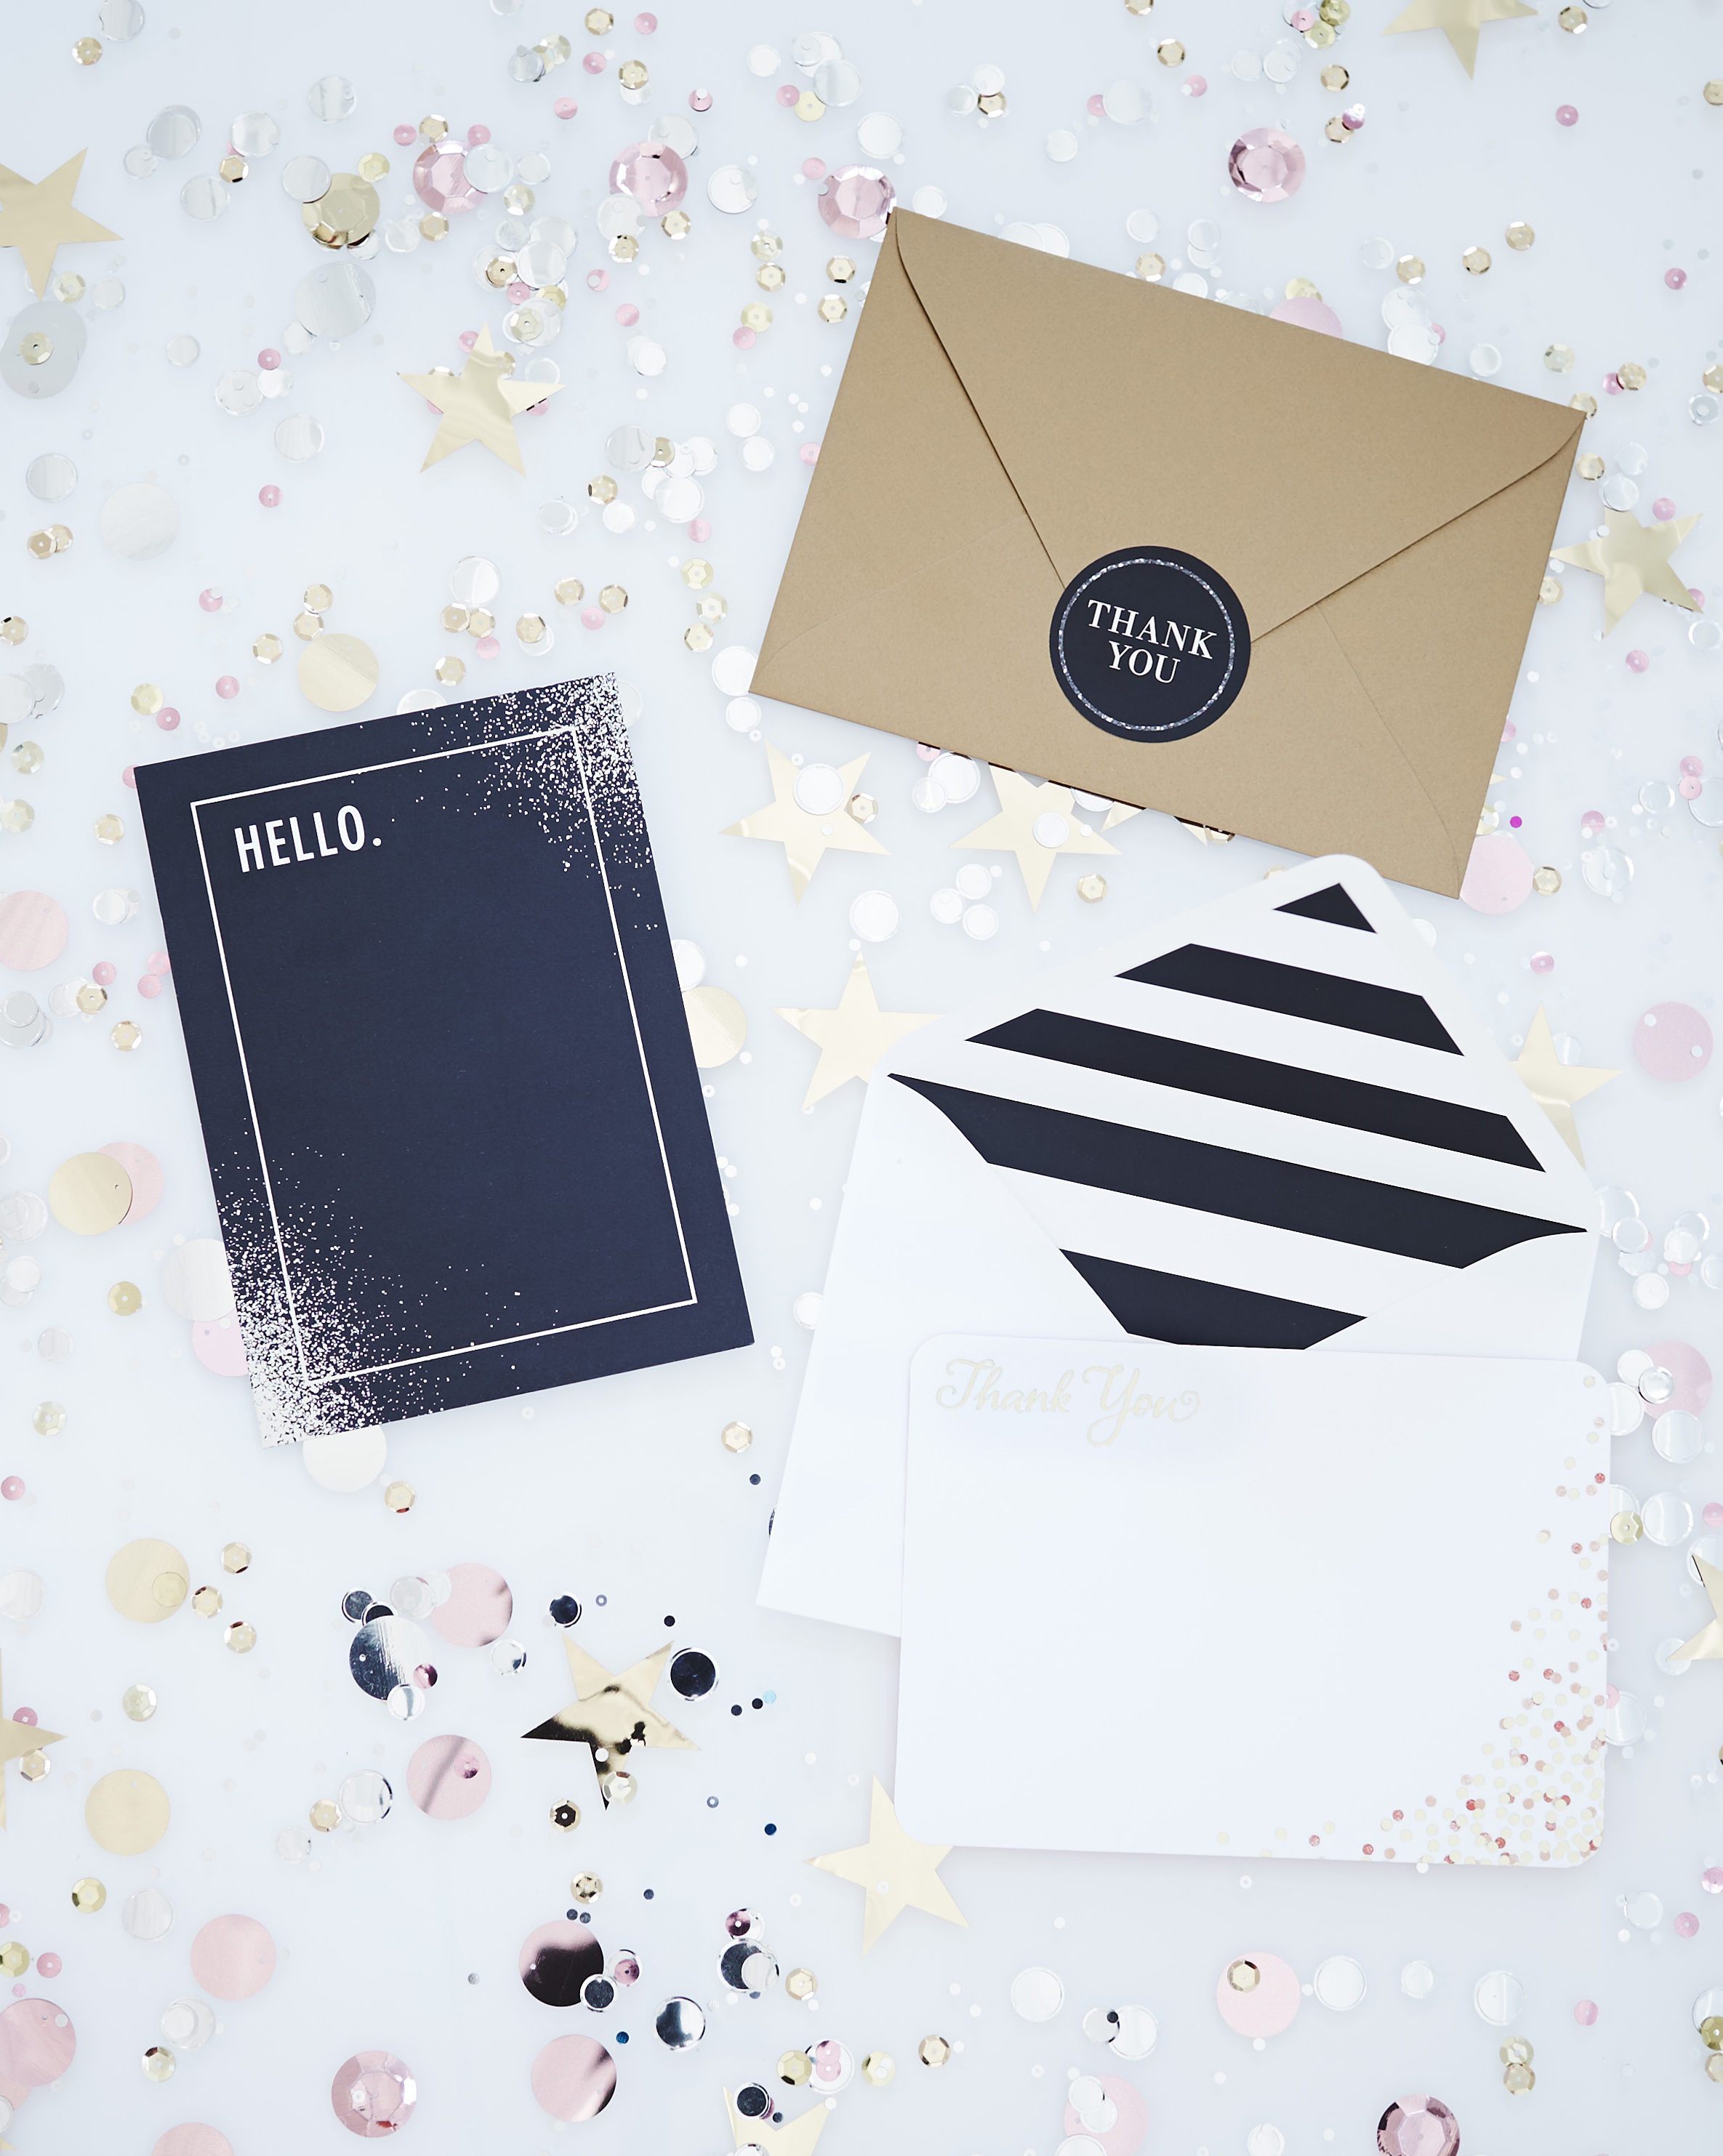 martha-weddings-party-2015-christian-oth-stationery-151012-0092-1015.jpg